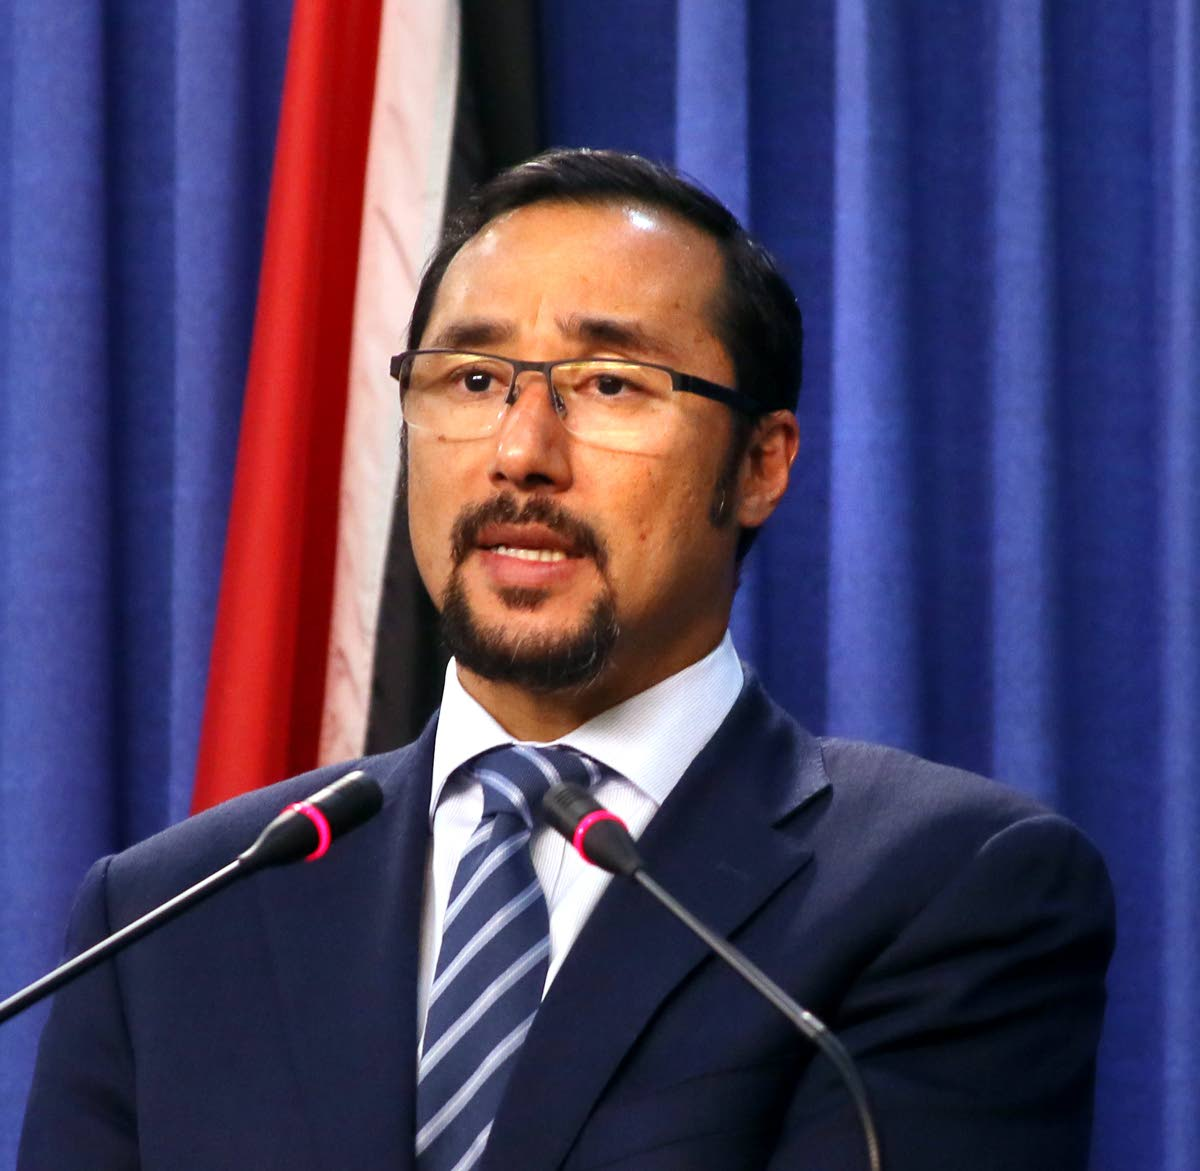 National Security Minister Stuart Young. FILE PHOTO